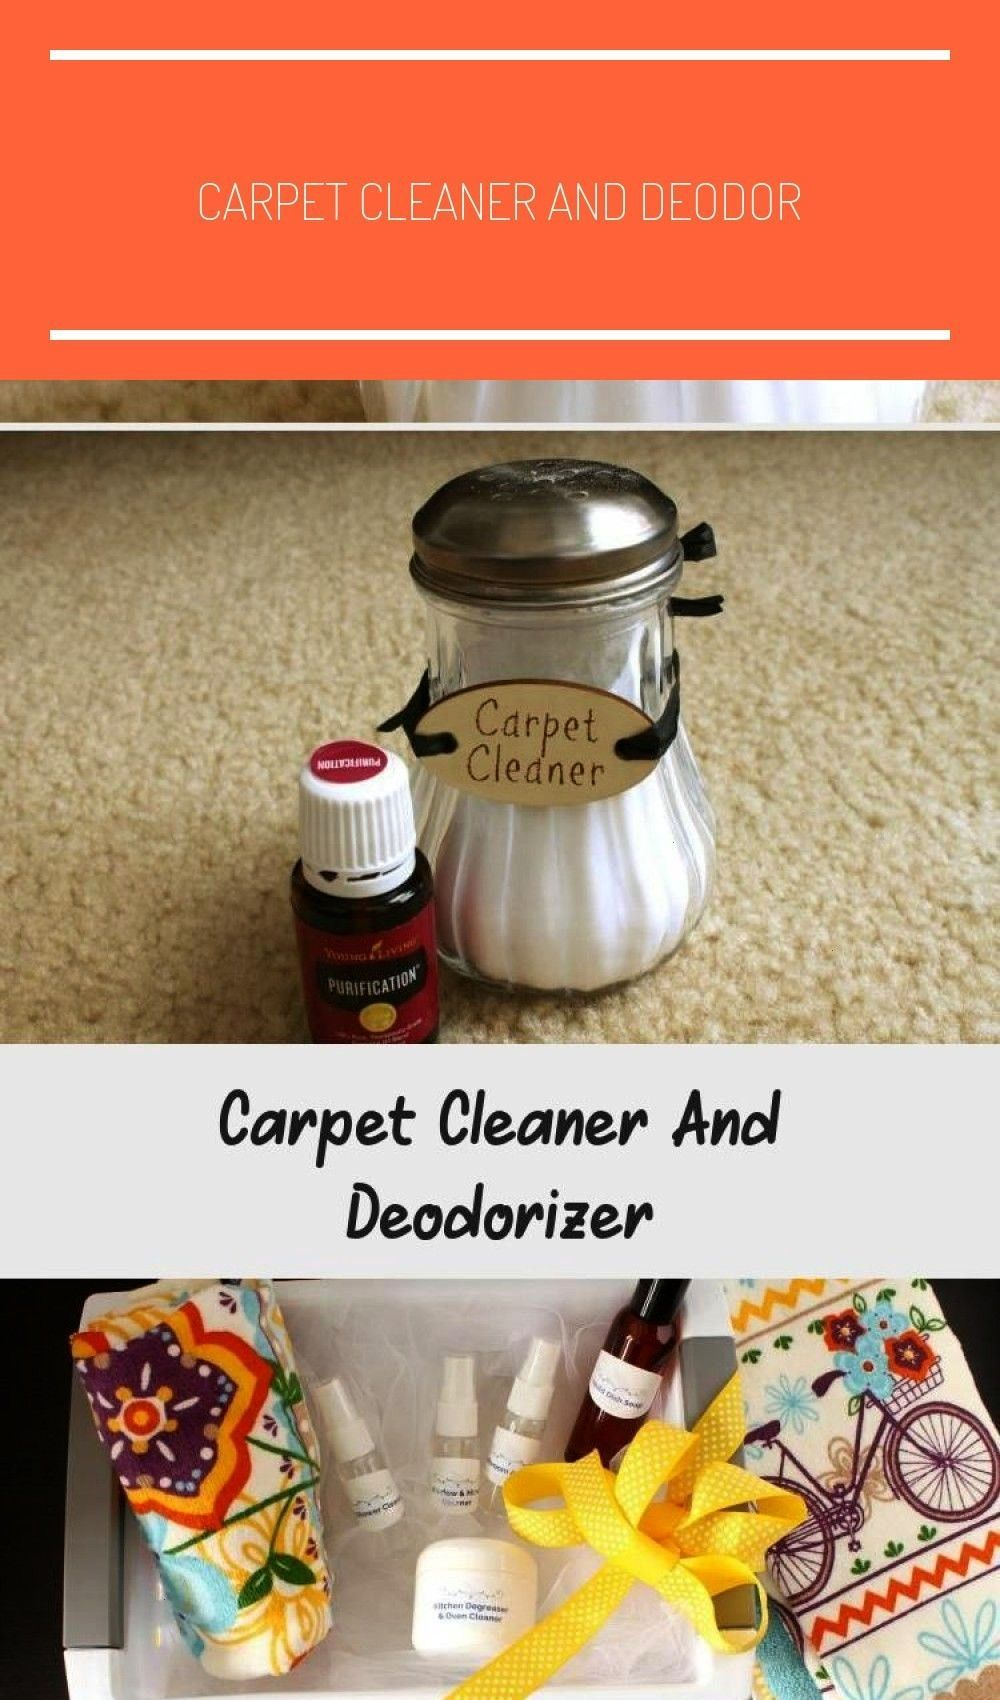 Cleaner and Deodorizer that neutralizes and eliminates odor clears the a  carpet cleaner Carpet Cleaner and Deodorizer that neutralizes and eliminates odor clears the a...